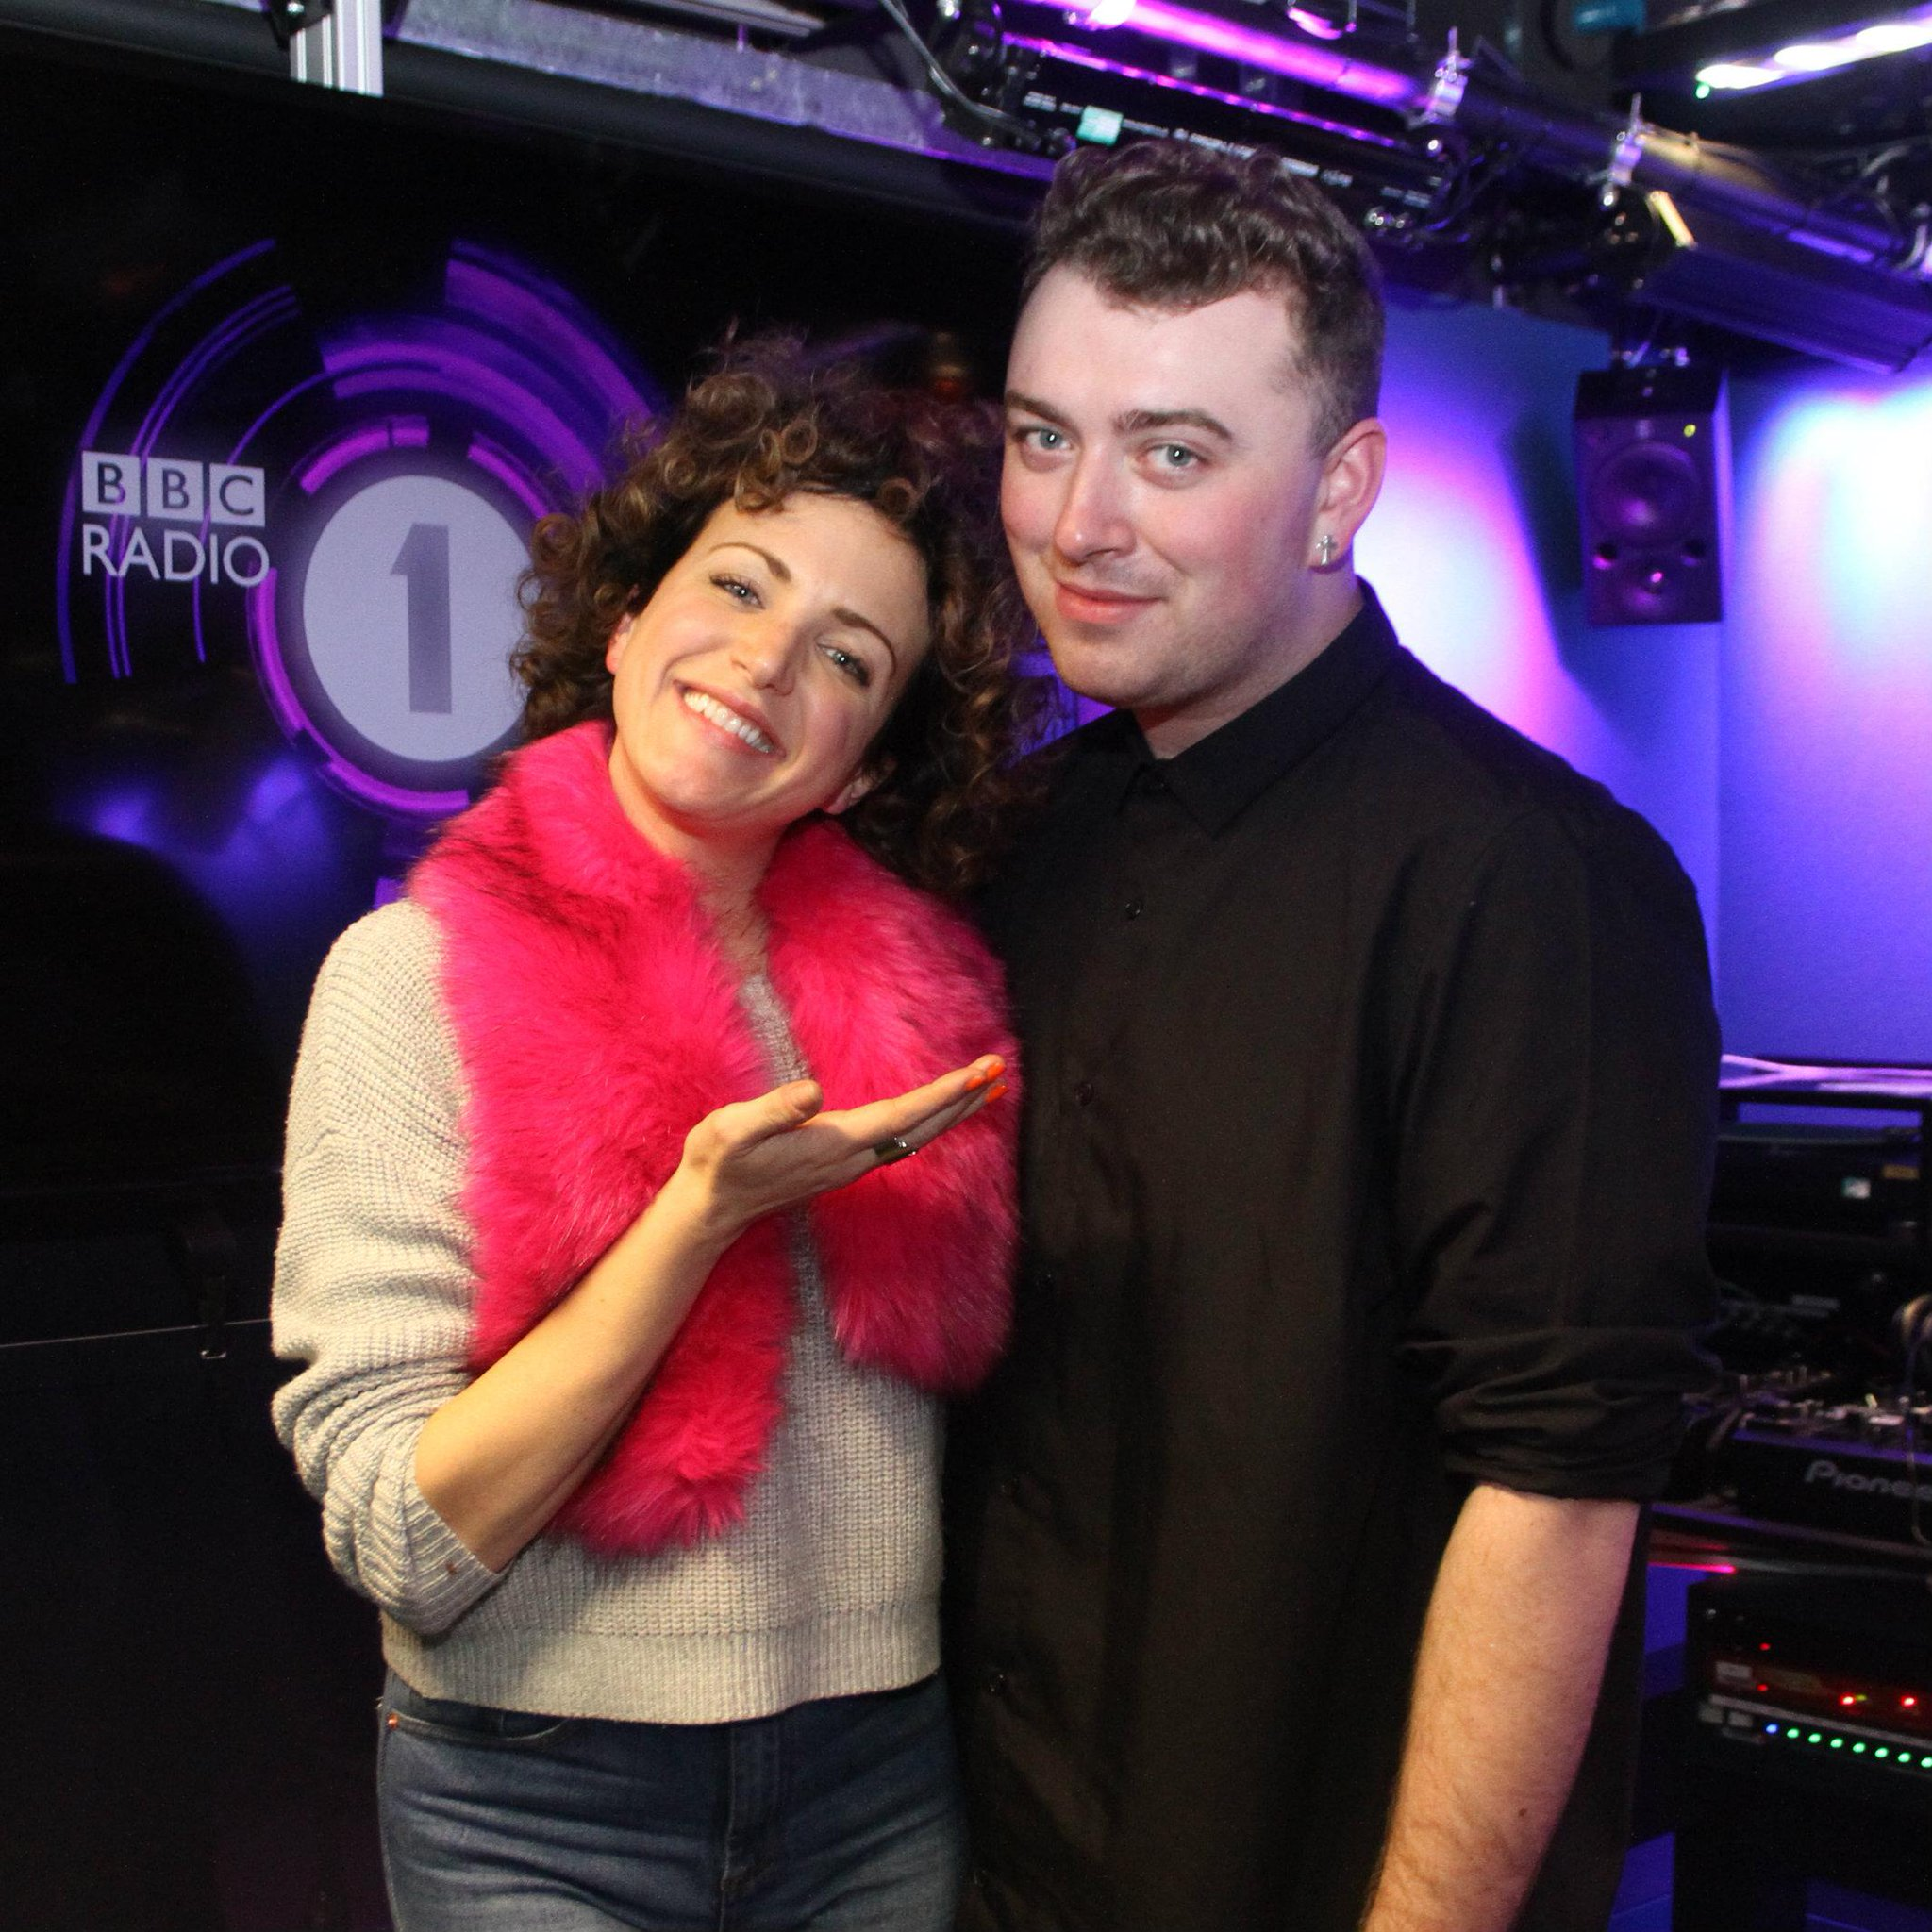 RT @BBCR1: .@samsmithworld is with @AnnieMac for the #musicalhotwaterbottle having a good old chinwag! http://t.co/WtGb7K6QDG http://t.co/d…